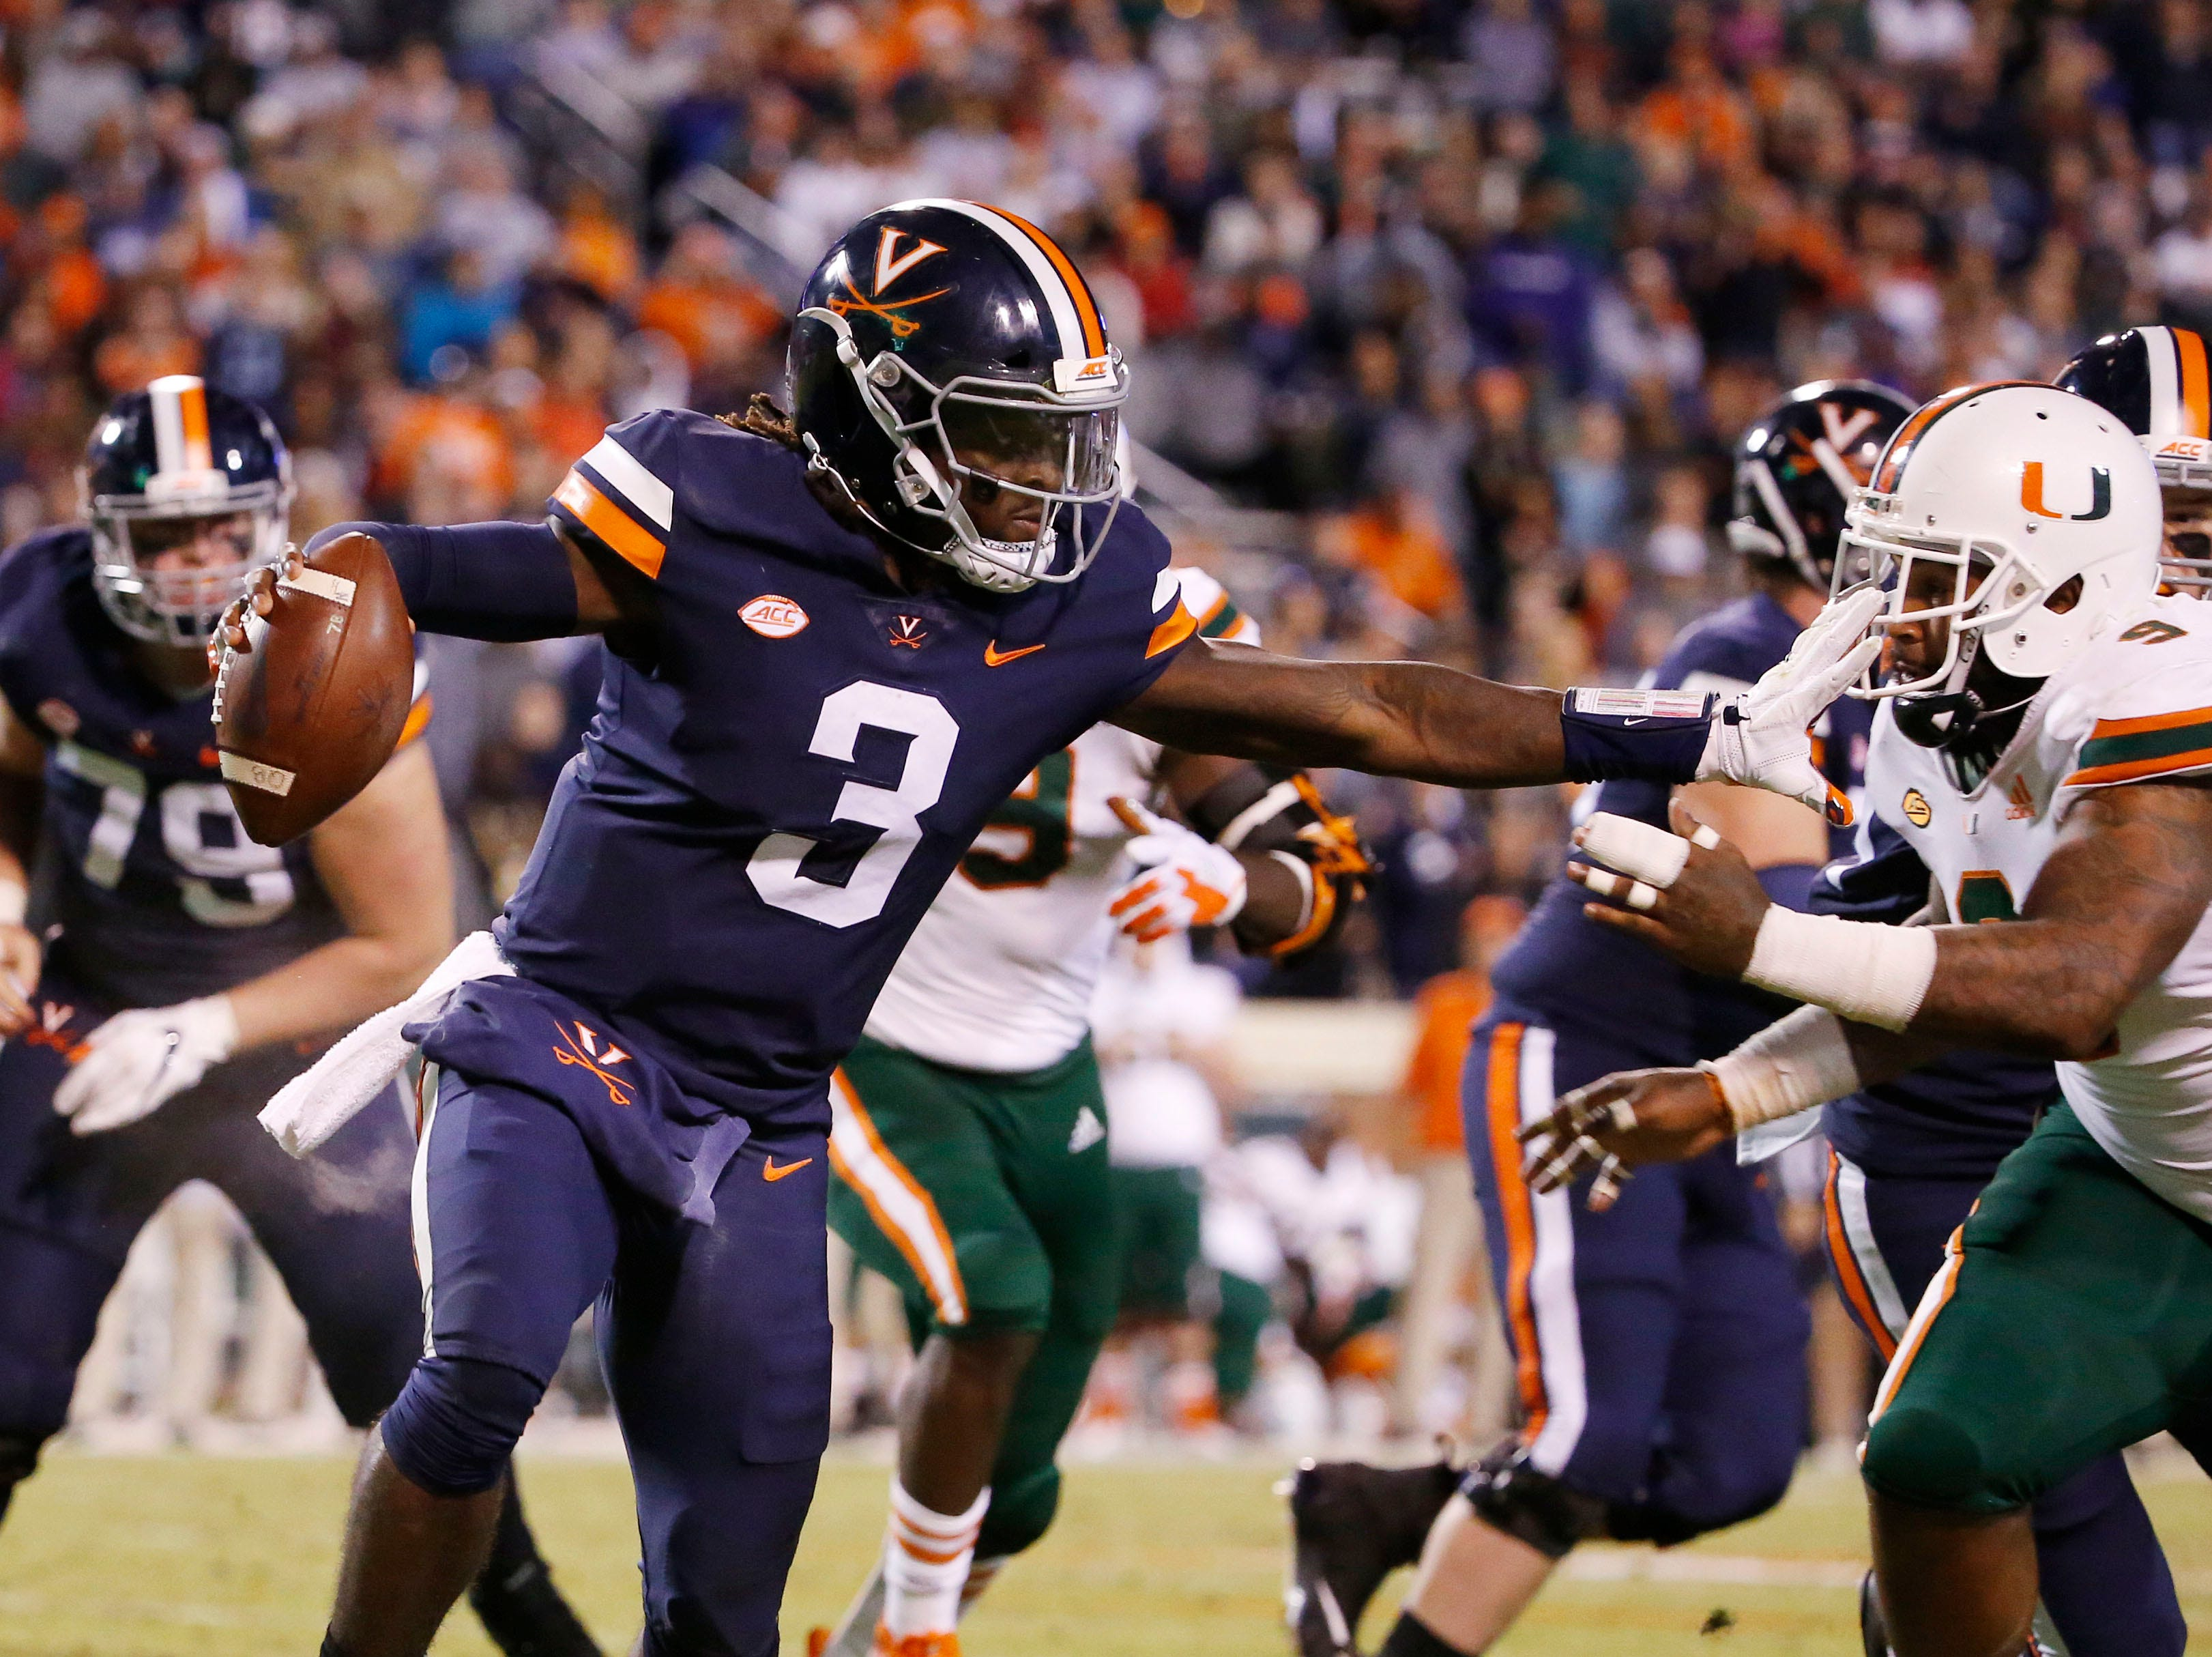 Virginia Cavaliers quarterback Bryce Perkins (3) throws a stiff-arm against the Miami Hurricanes during the second quarter at Scott Stadium.